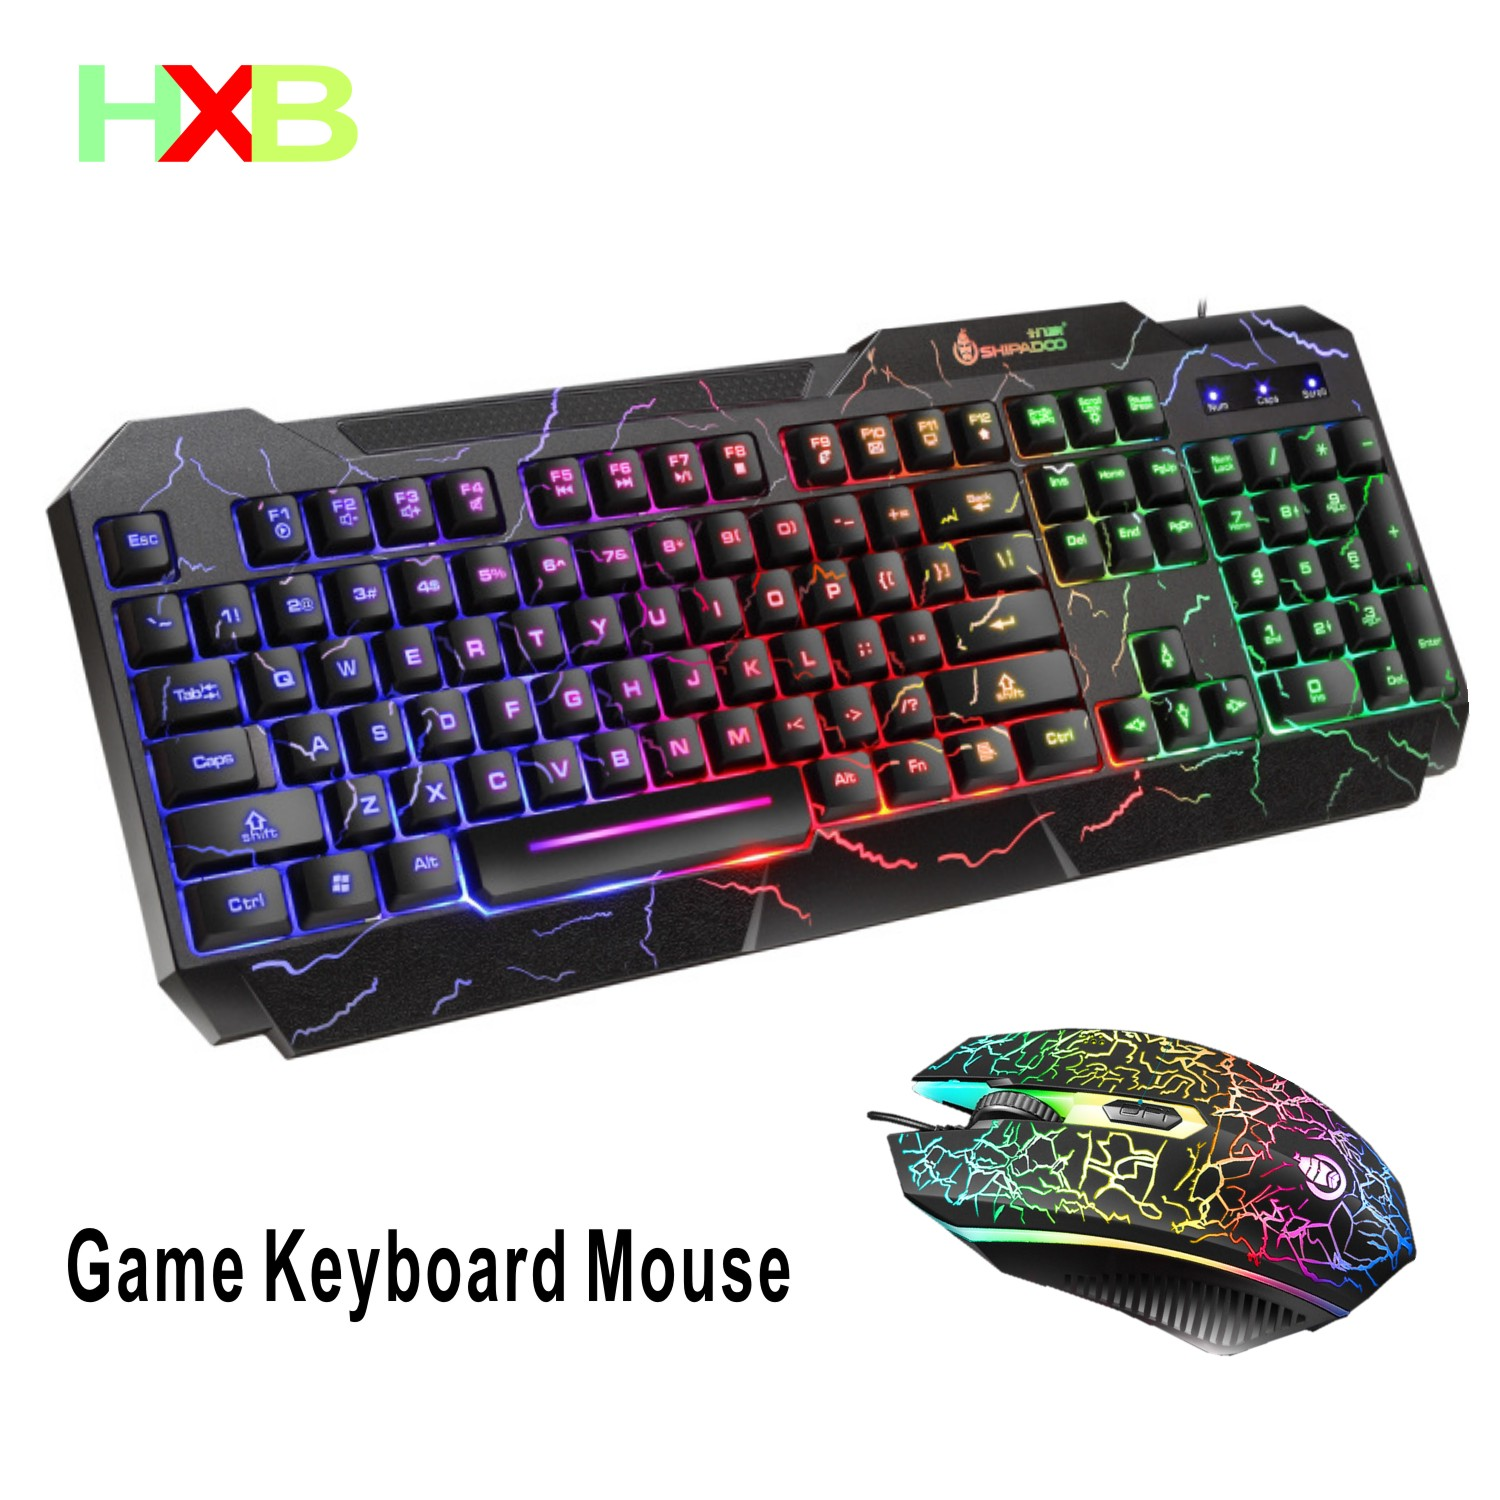 HXB Mouse Keyboard Luminous Backlight Keyboard Mouse Combo Wired Mouse And Keyboard Anti-splash Gaming Keyboard And Mouse For Pc